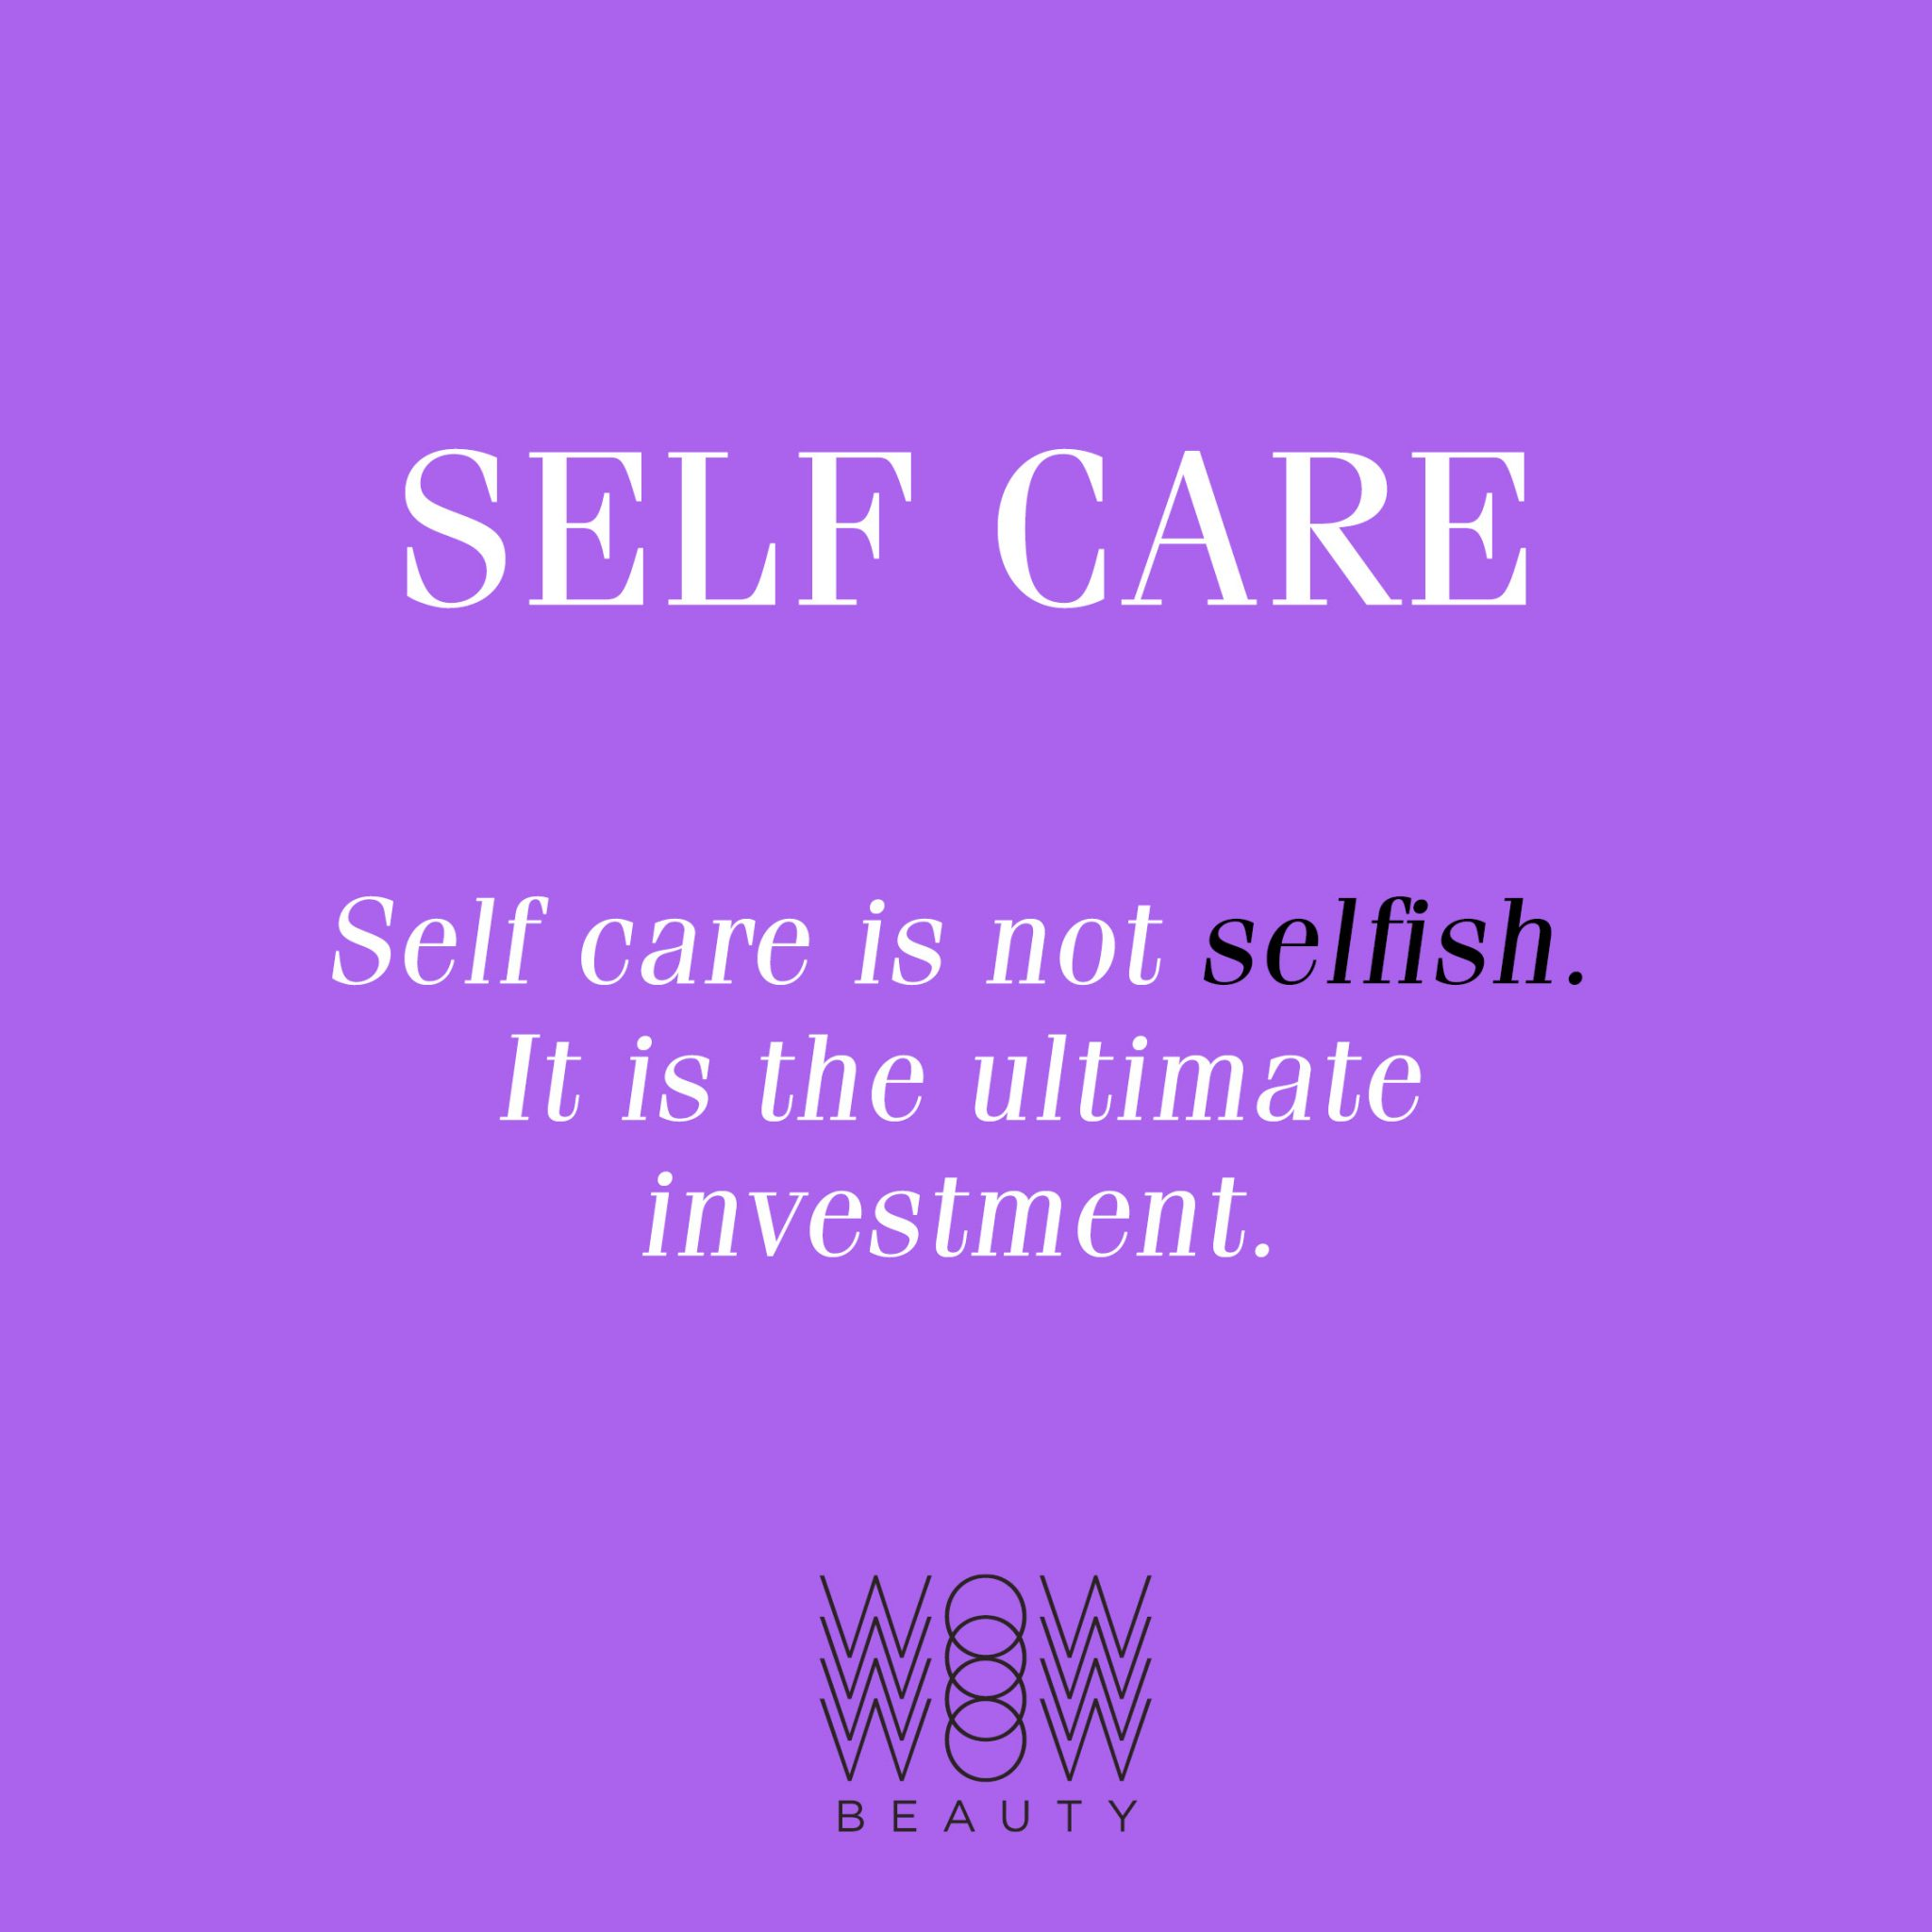 self care is not selfish without wellbeing coach bit